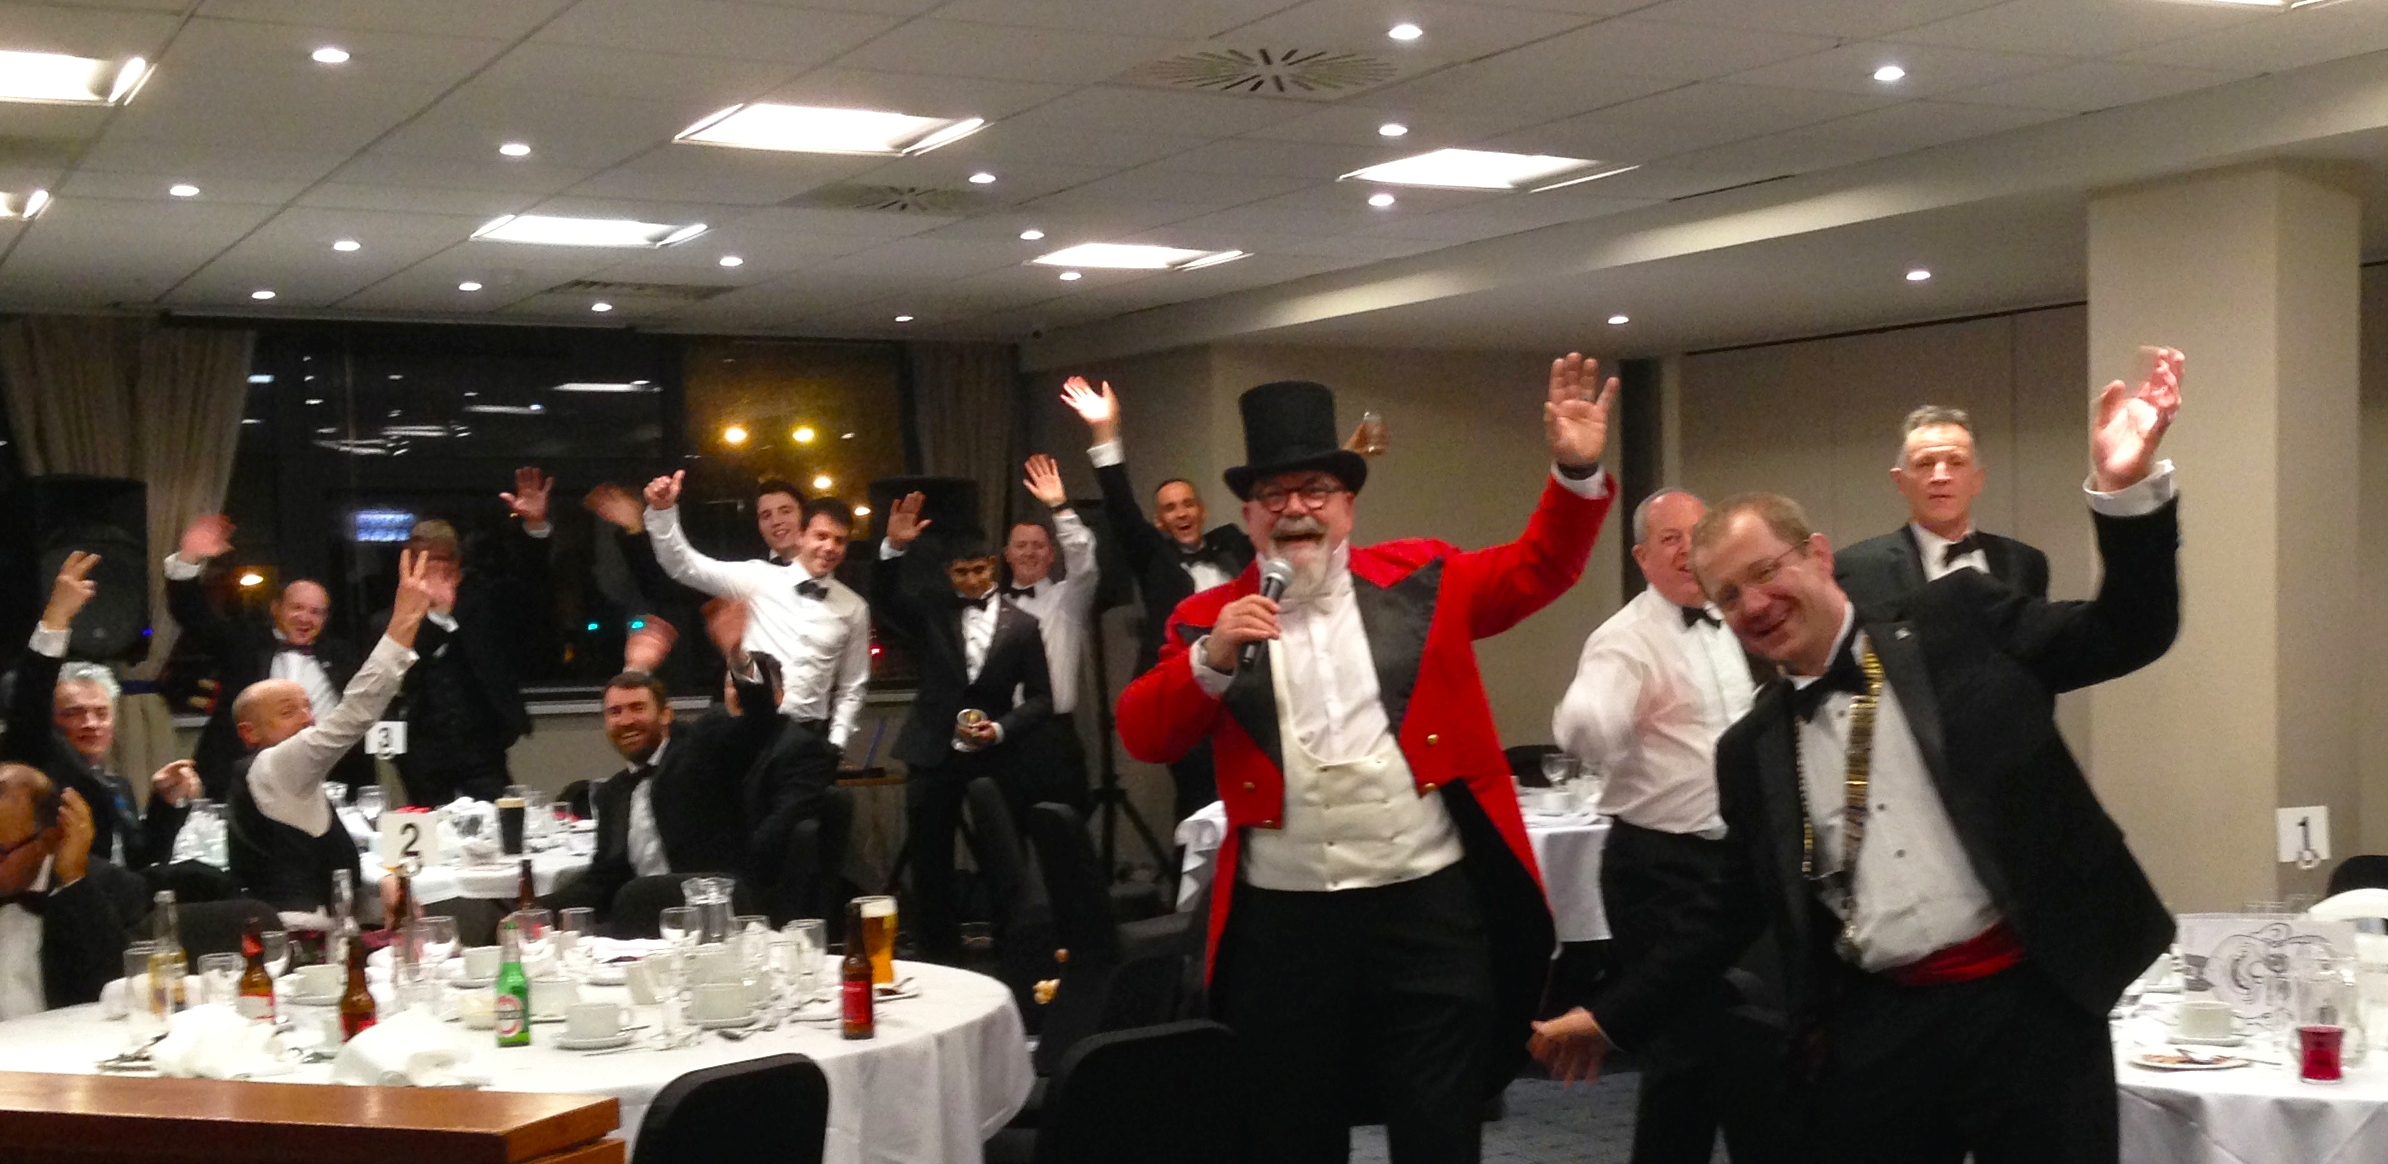 Ringmaster Round Table Dinner.JPG